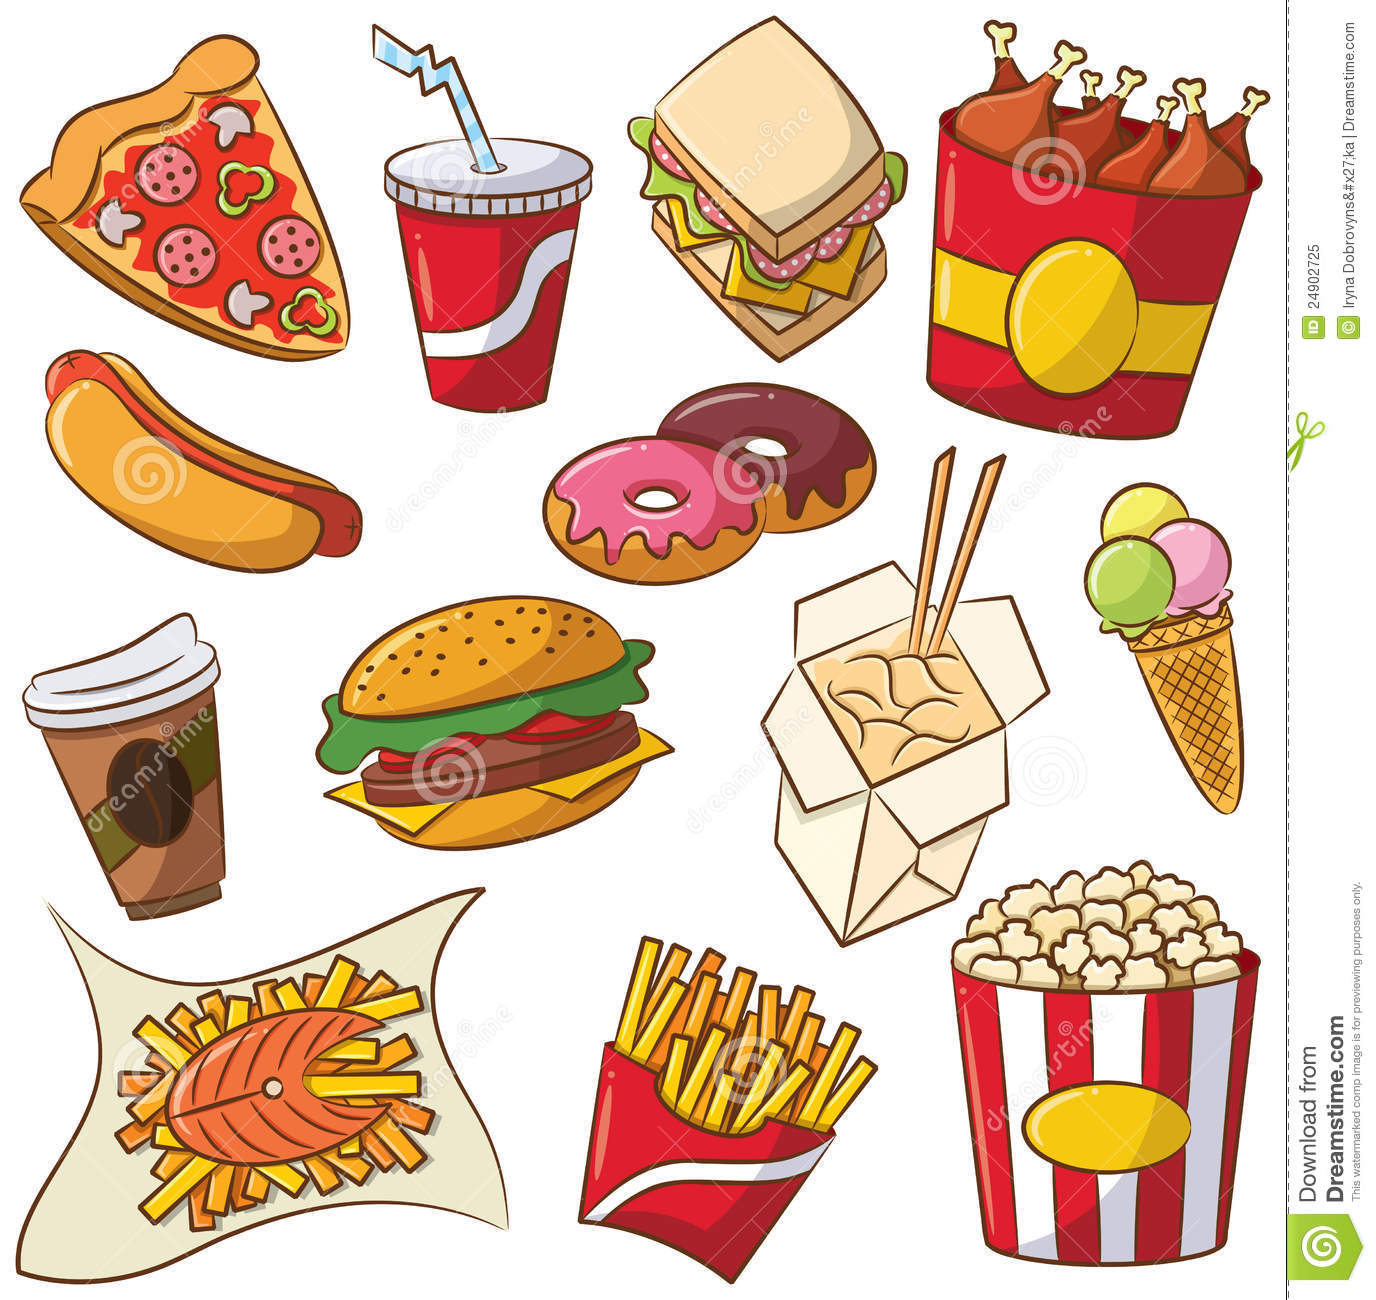 Foods That Are Good for You Clip Art